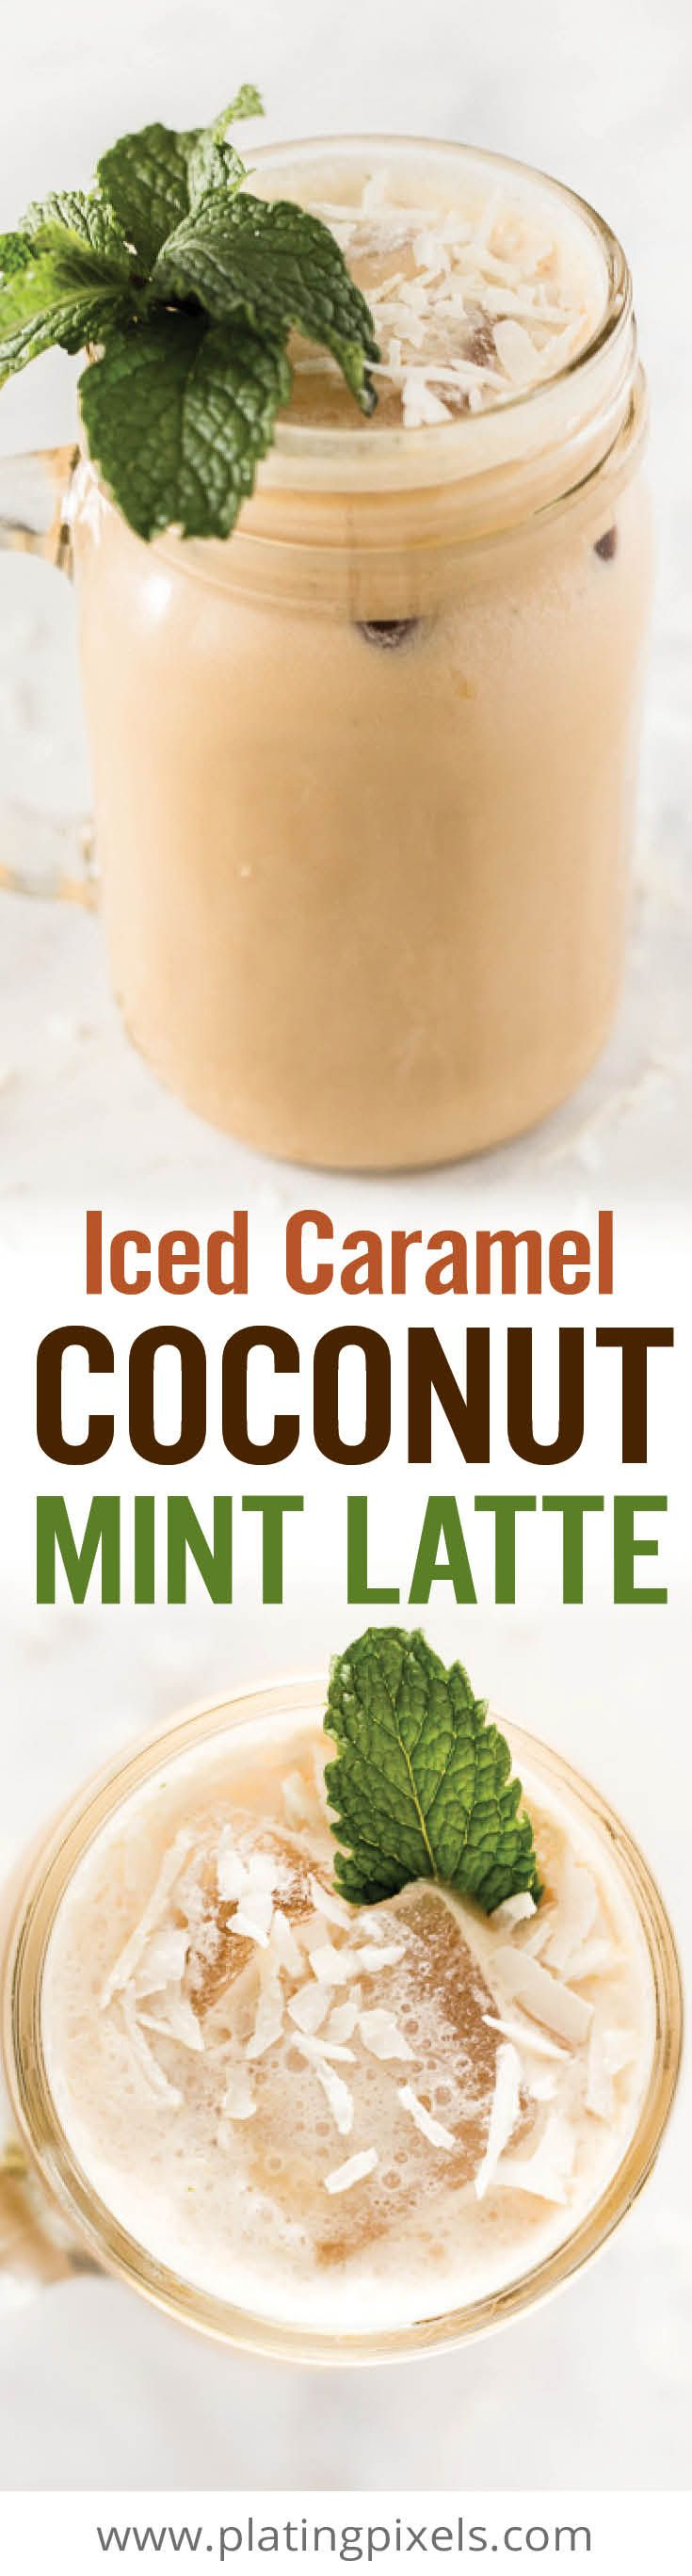 This Iced Caramel Coconut Mint Latte recipe is an easy homemade specialty coffee drink. Made with cold brew coffee, muddled mint, coconut extract and frothed top. - www.platingpixels.com